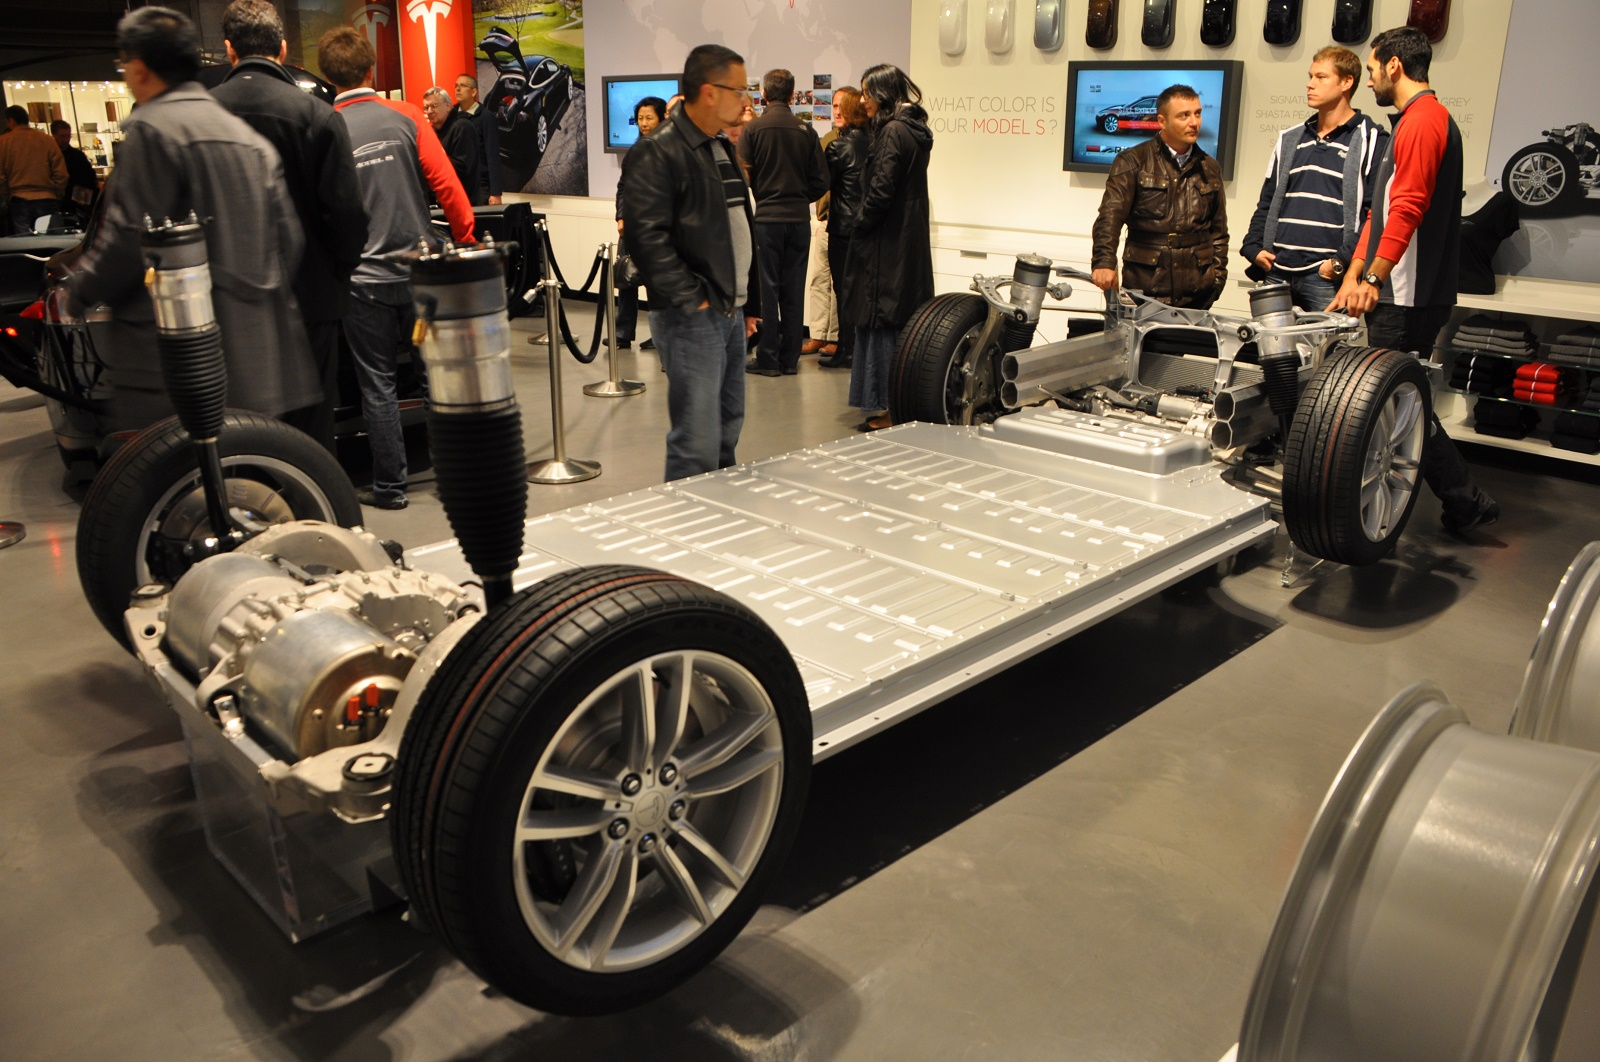 119799 Could A Bricked Tesla Battery Cost You 40000 besides Teslas Most Disruptive Product May Not Be Its Cars likewise Schon Wieder Ein Tesla Jaeger T12760 40 together with Citroen Berlingo Van Multispace Electric Car moreover 1098350 why Lg Chem Leads In Electric Car Batteries Materials Science It Says. on lithium battery packs for electric cars